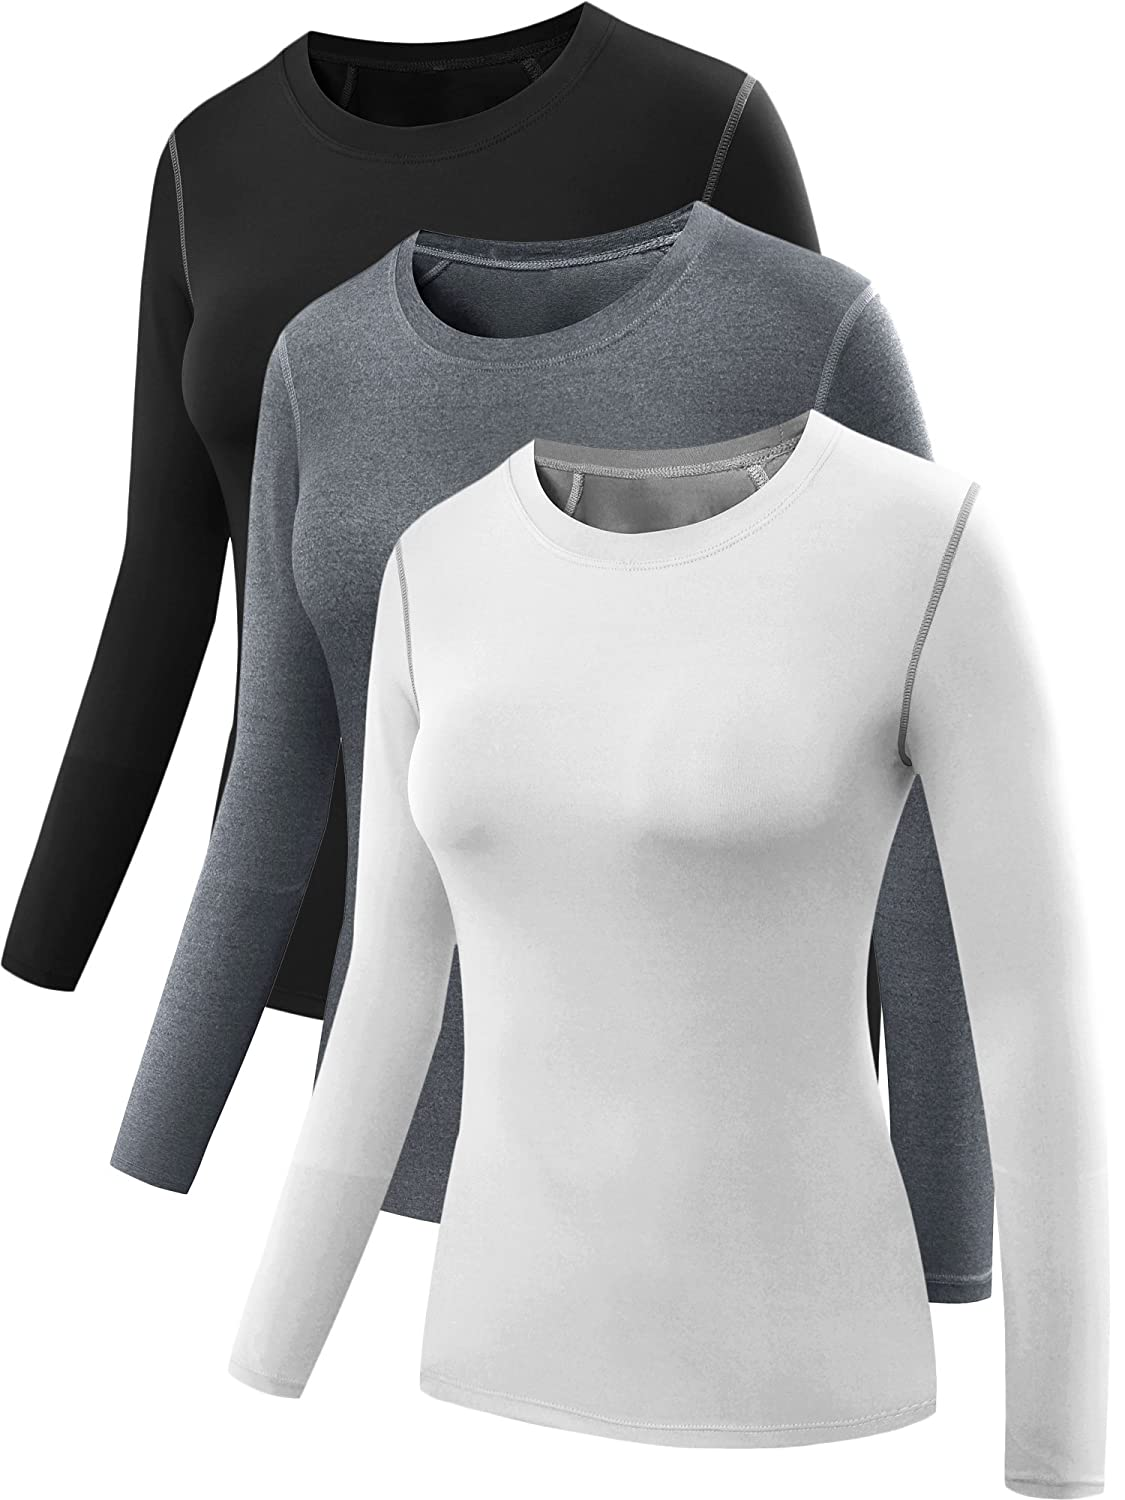 8be47e0b056134 Amazon.com  Neleus Women s 3 Pack Dry Fit Athletic Compression Long Sleeve  T Shirt  Clothing